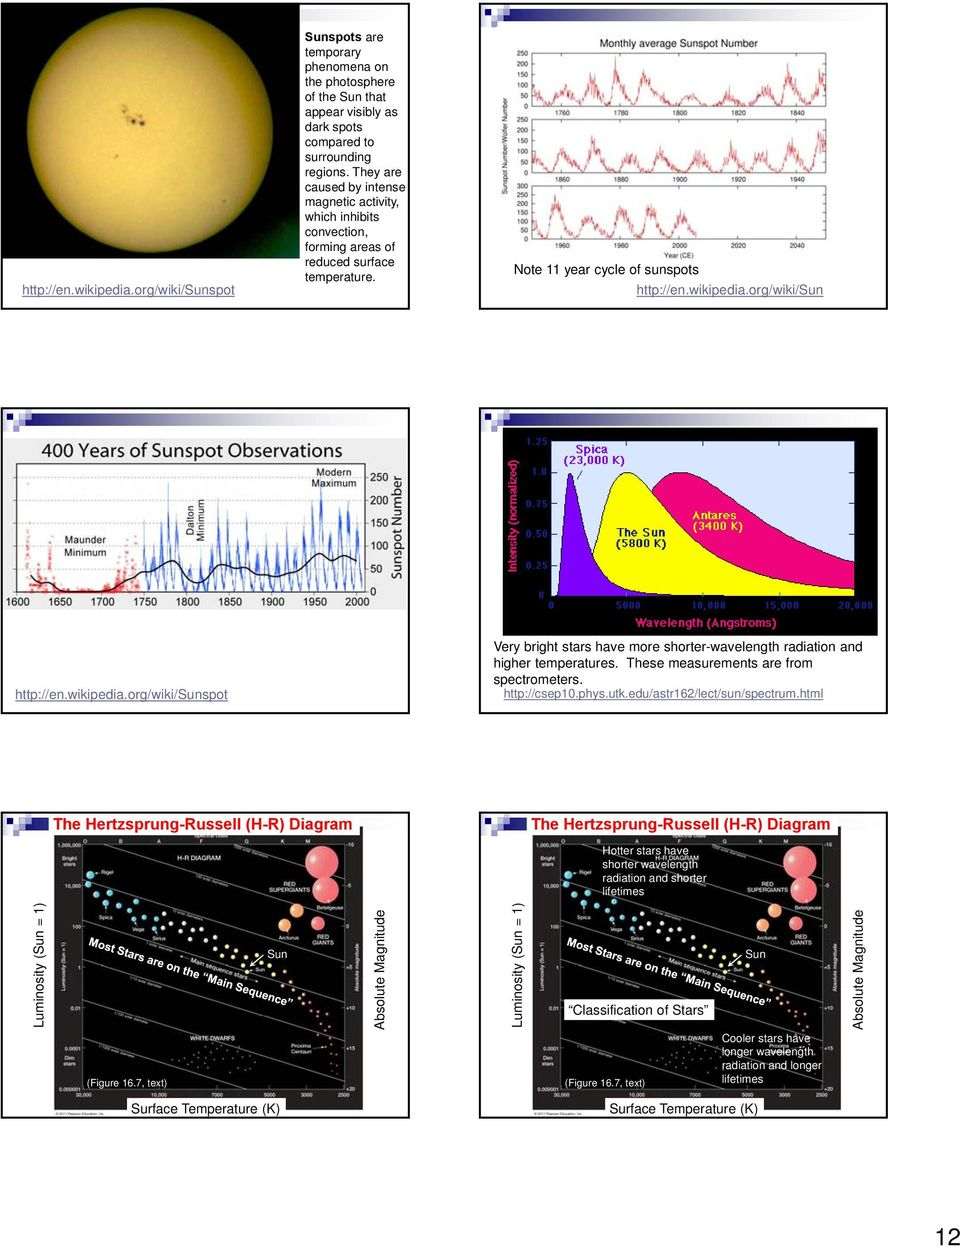 wikipedia.org/wiki/sunspot Very bright stars have more shorter-wavelength radiation and higher temperatures. These measurements are from spectrometers. http://csep10.phys.utk.